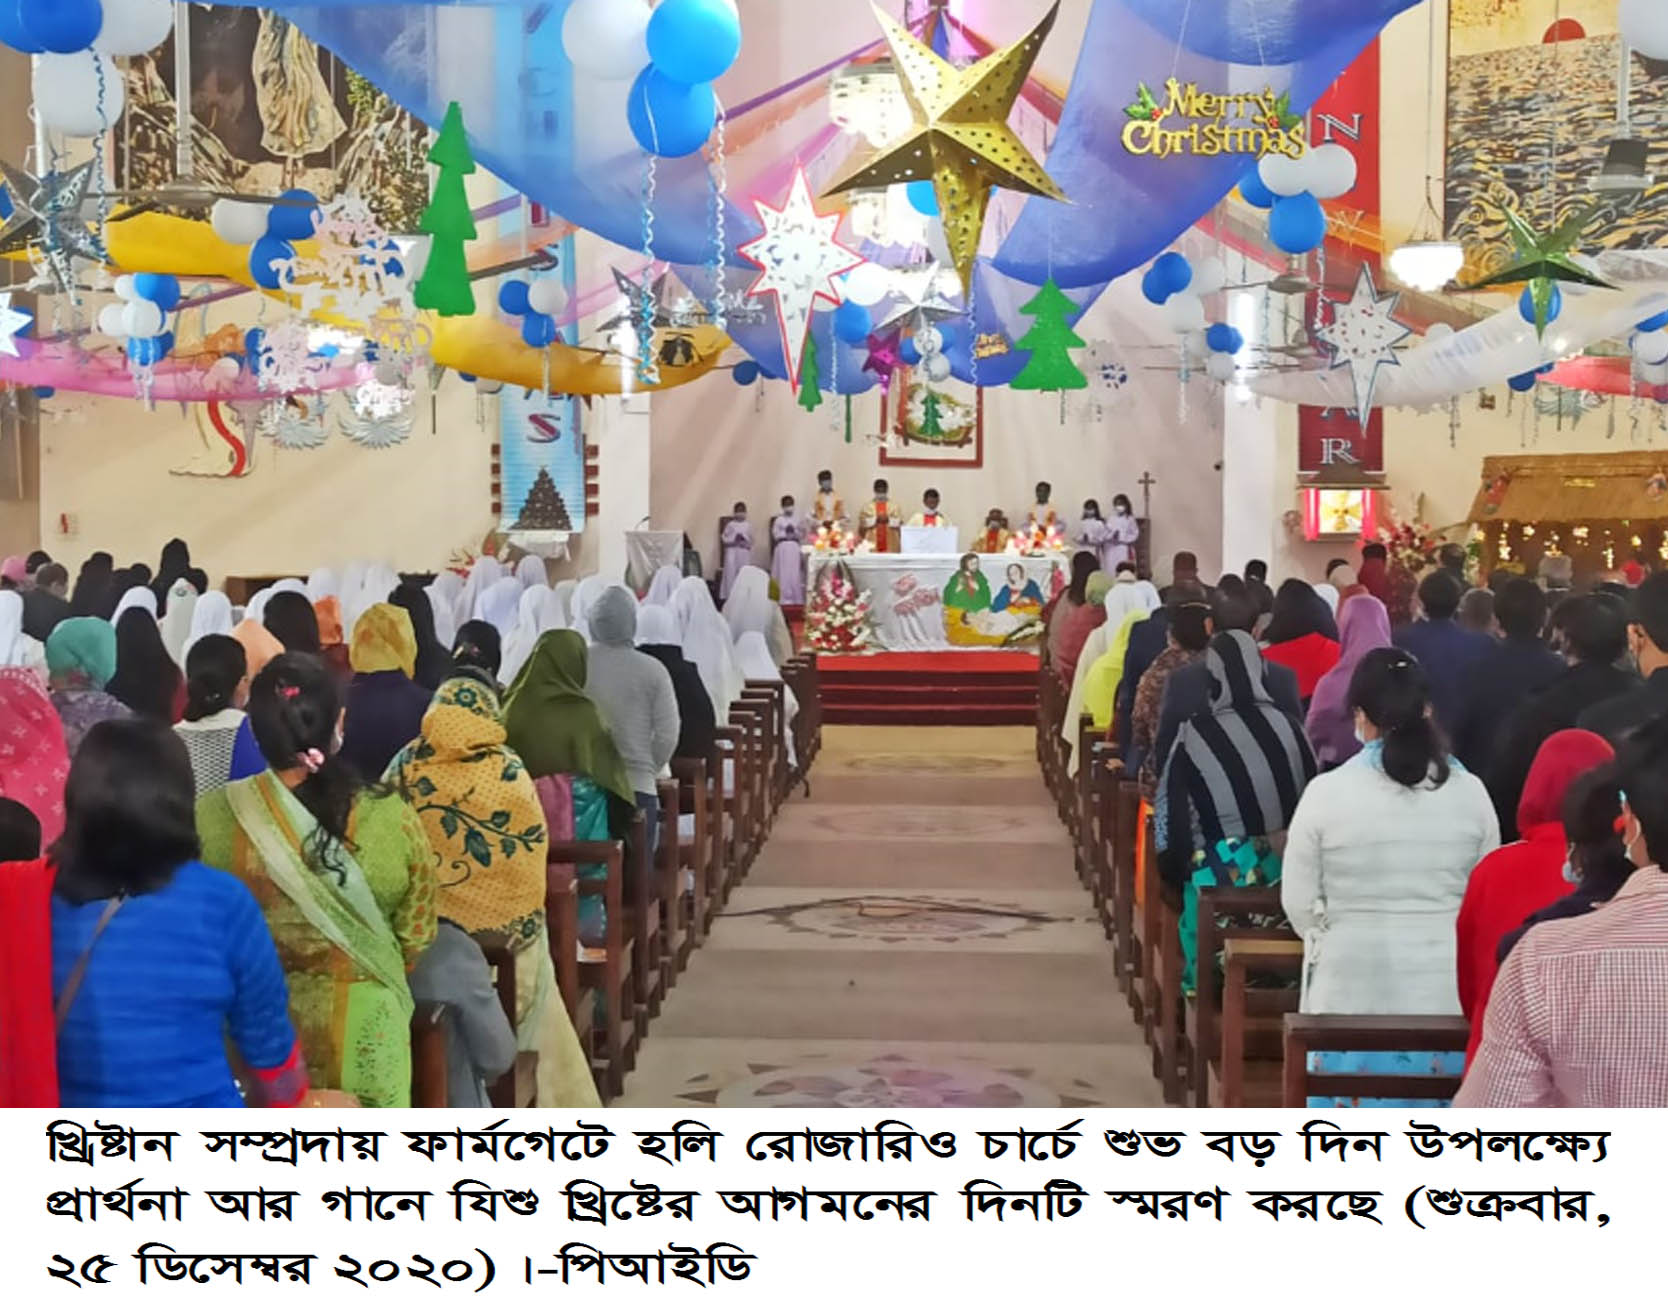 Christmas celebrated in Bangladesh